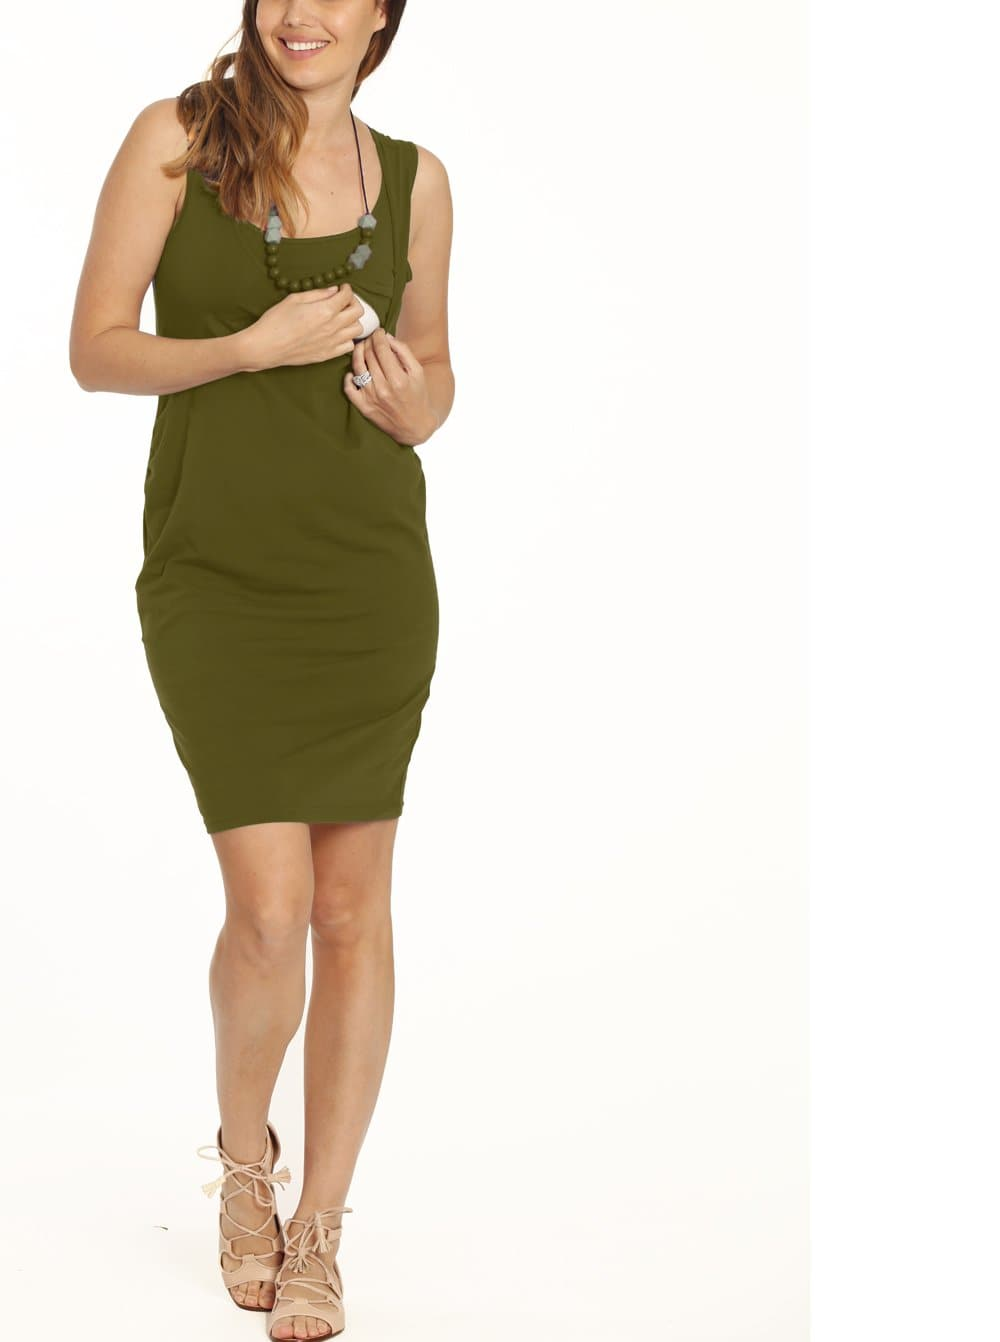 Breastfeeding Classic Nursing Tank Dress - Khaki - Angel Maternity - Maternity clothes - shop online